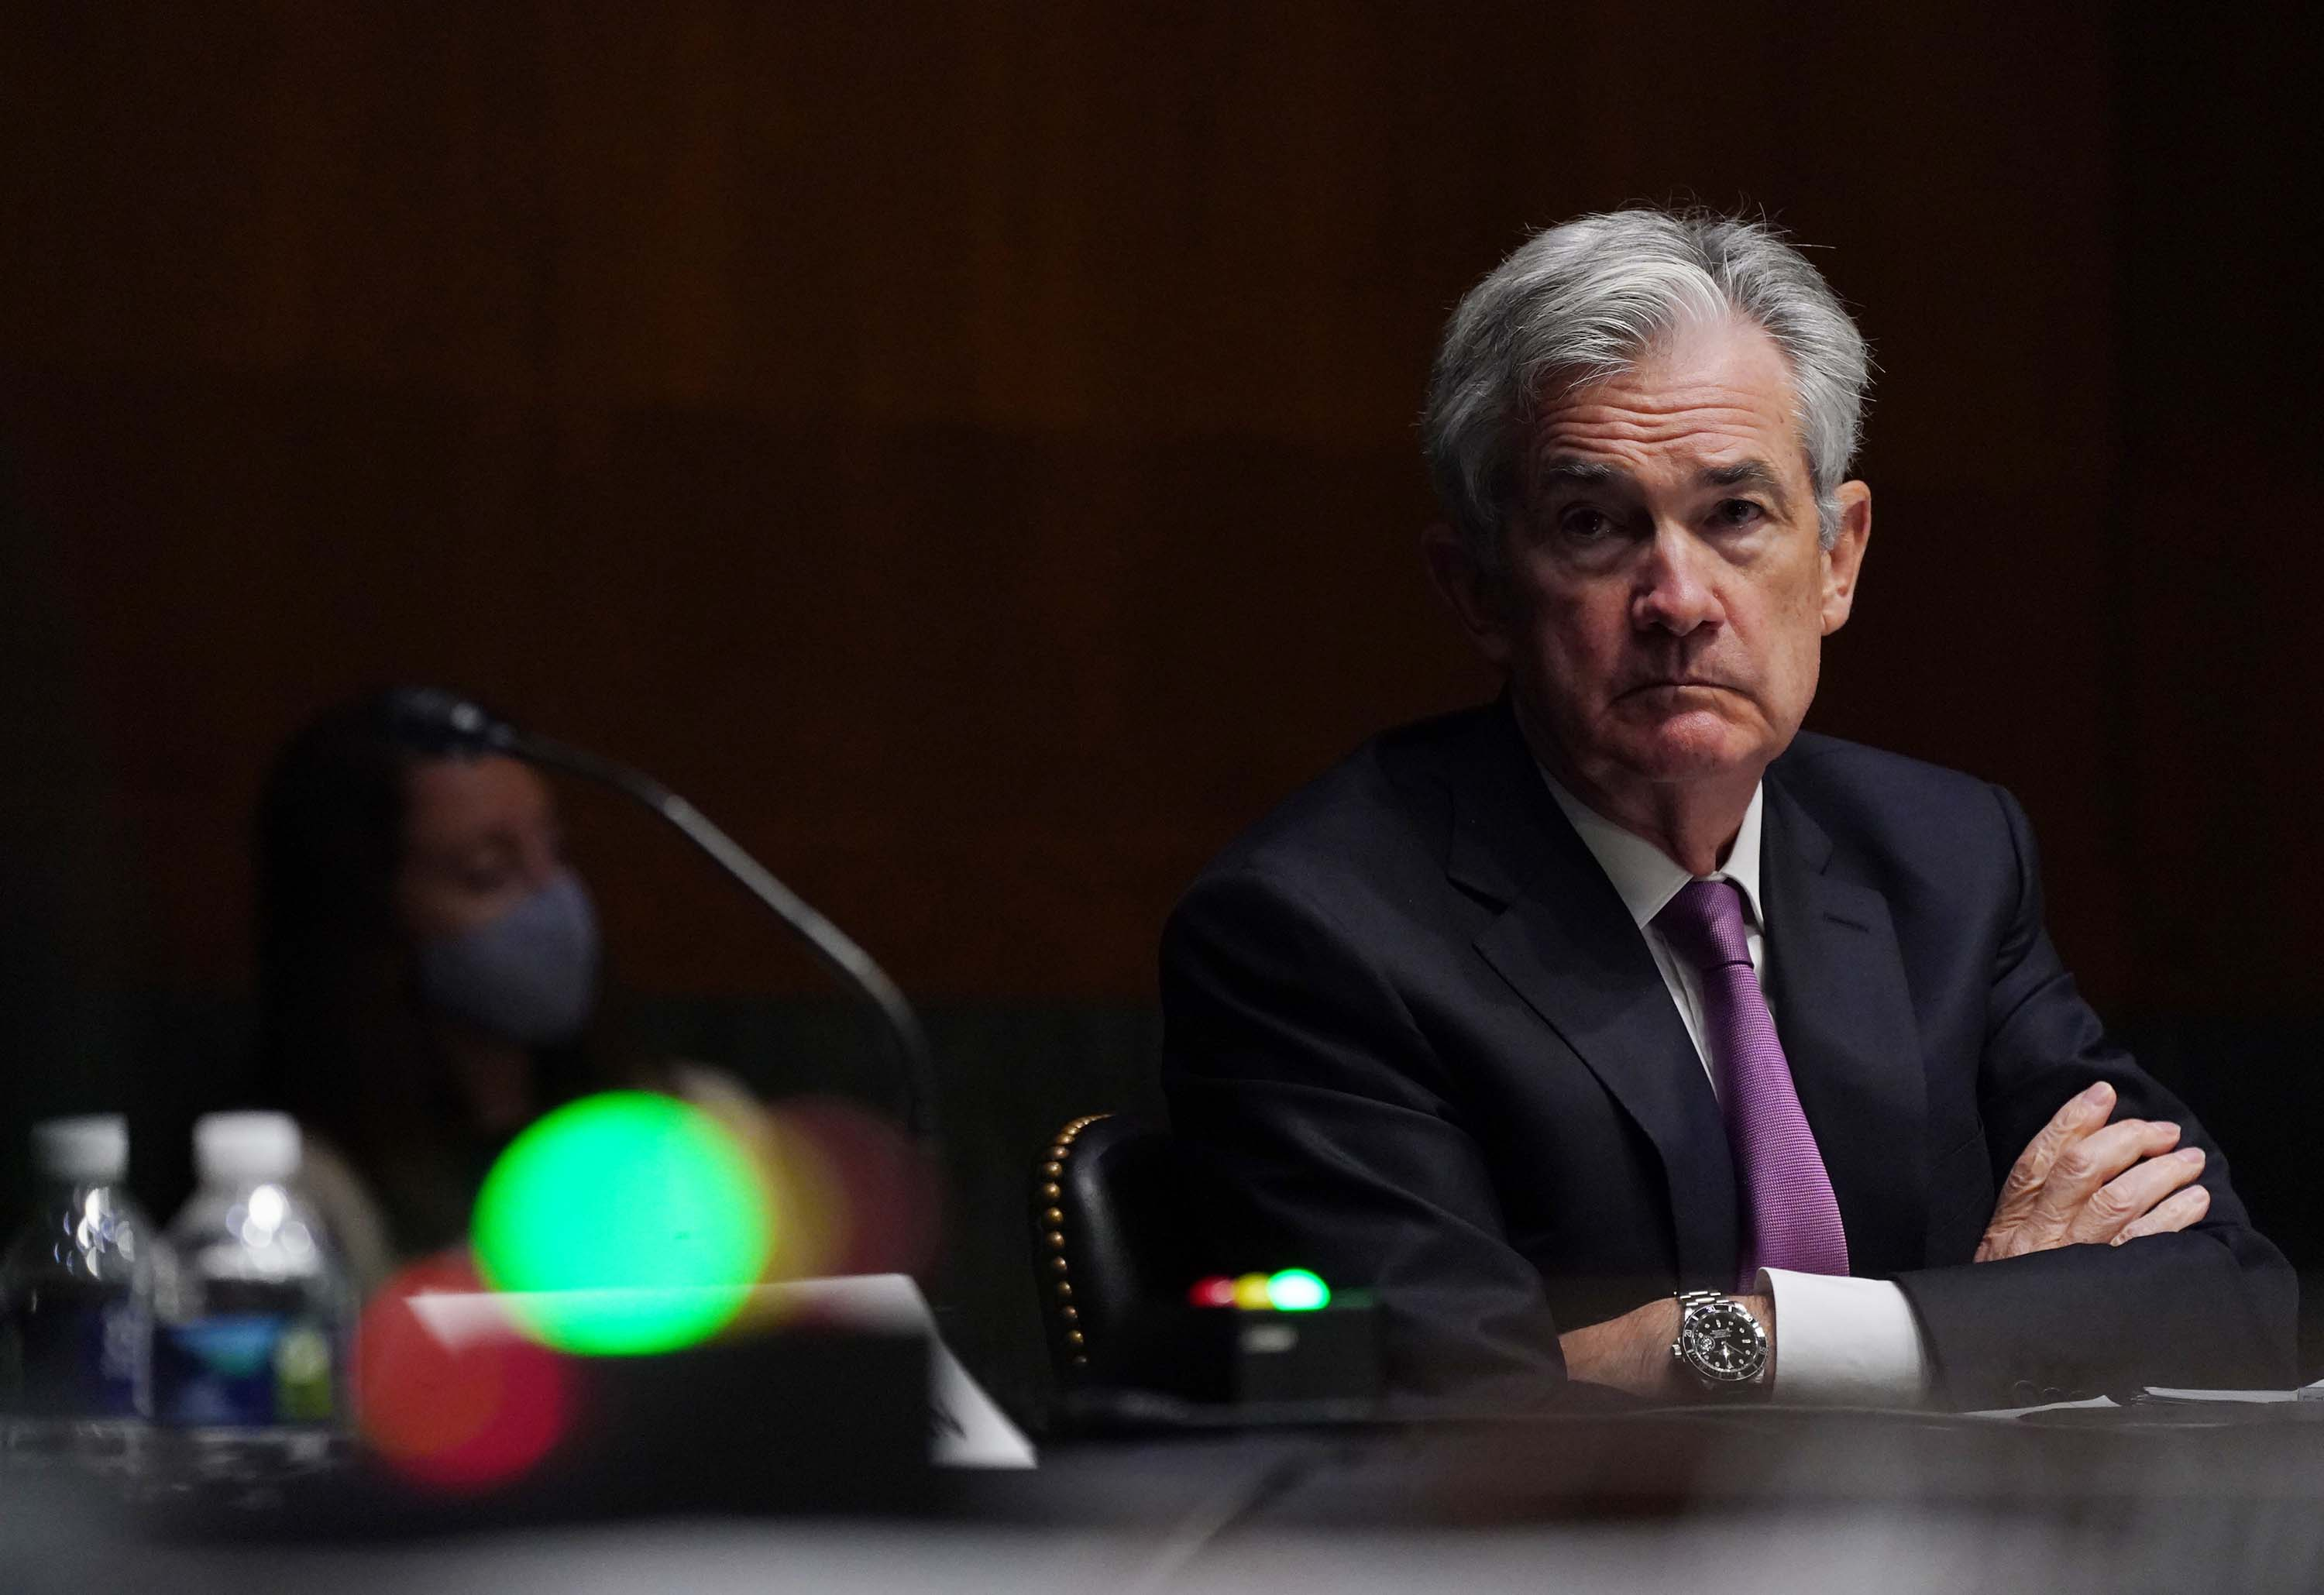 Trump picks a fight with Powell. The economy loses